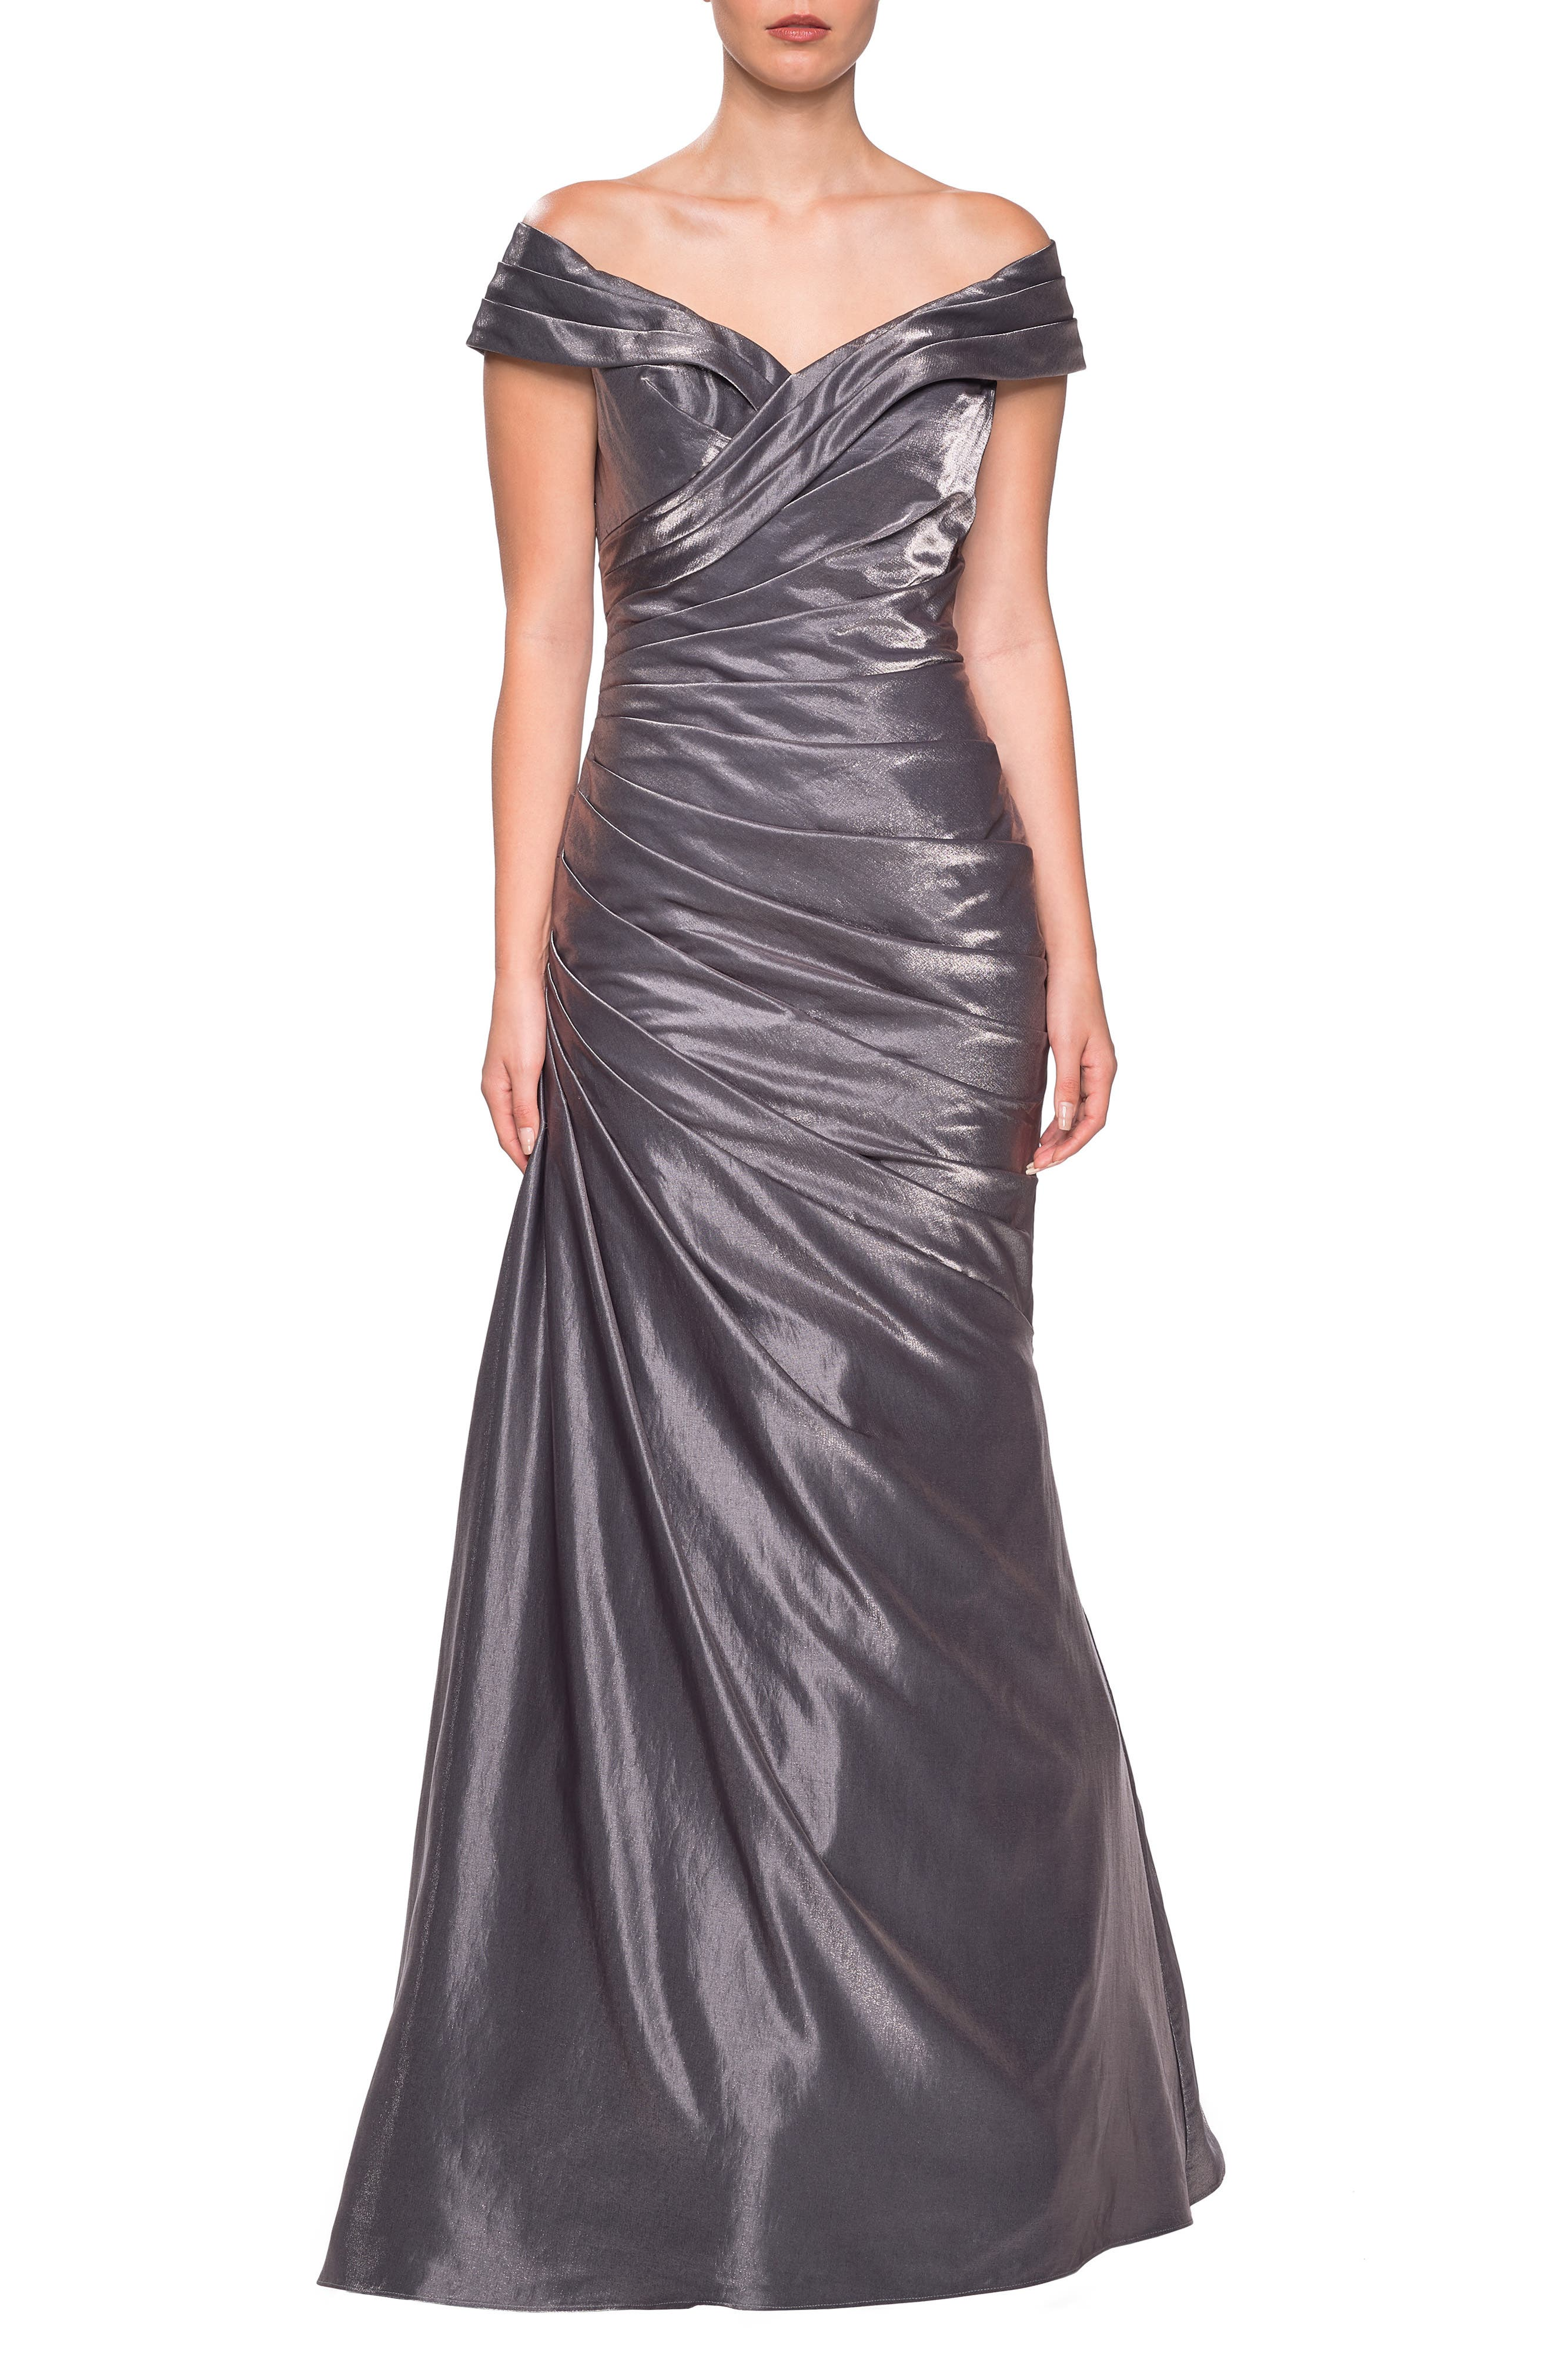 LA FEMME, Ruched Two-Tone Satin Gown, Main thumbnail 1, color, PLATINUM